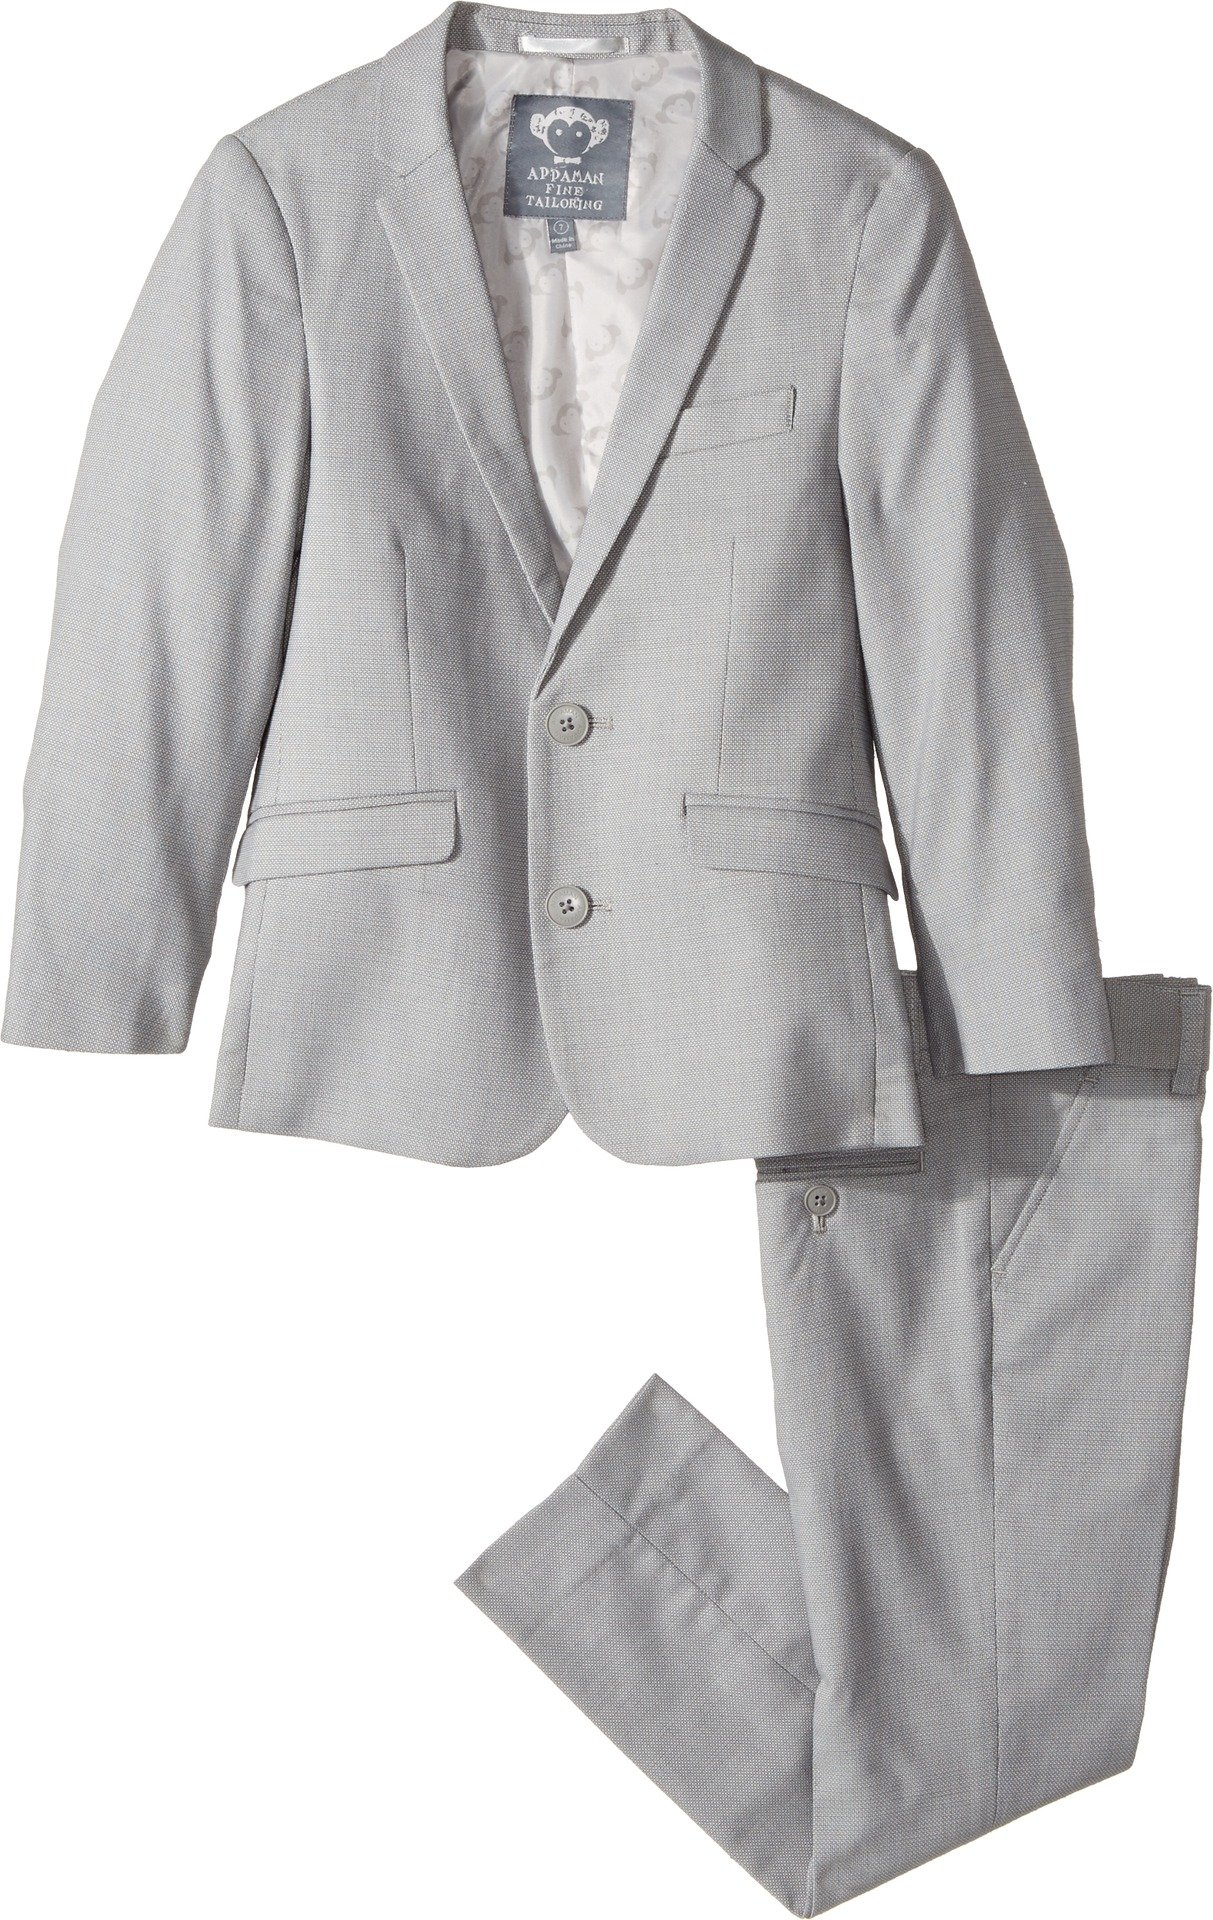 Appaman Little Boys' Two Piece MOD Suit, Chateau Grey, 7